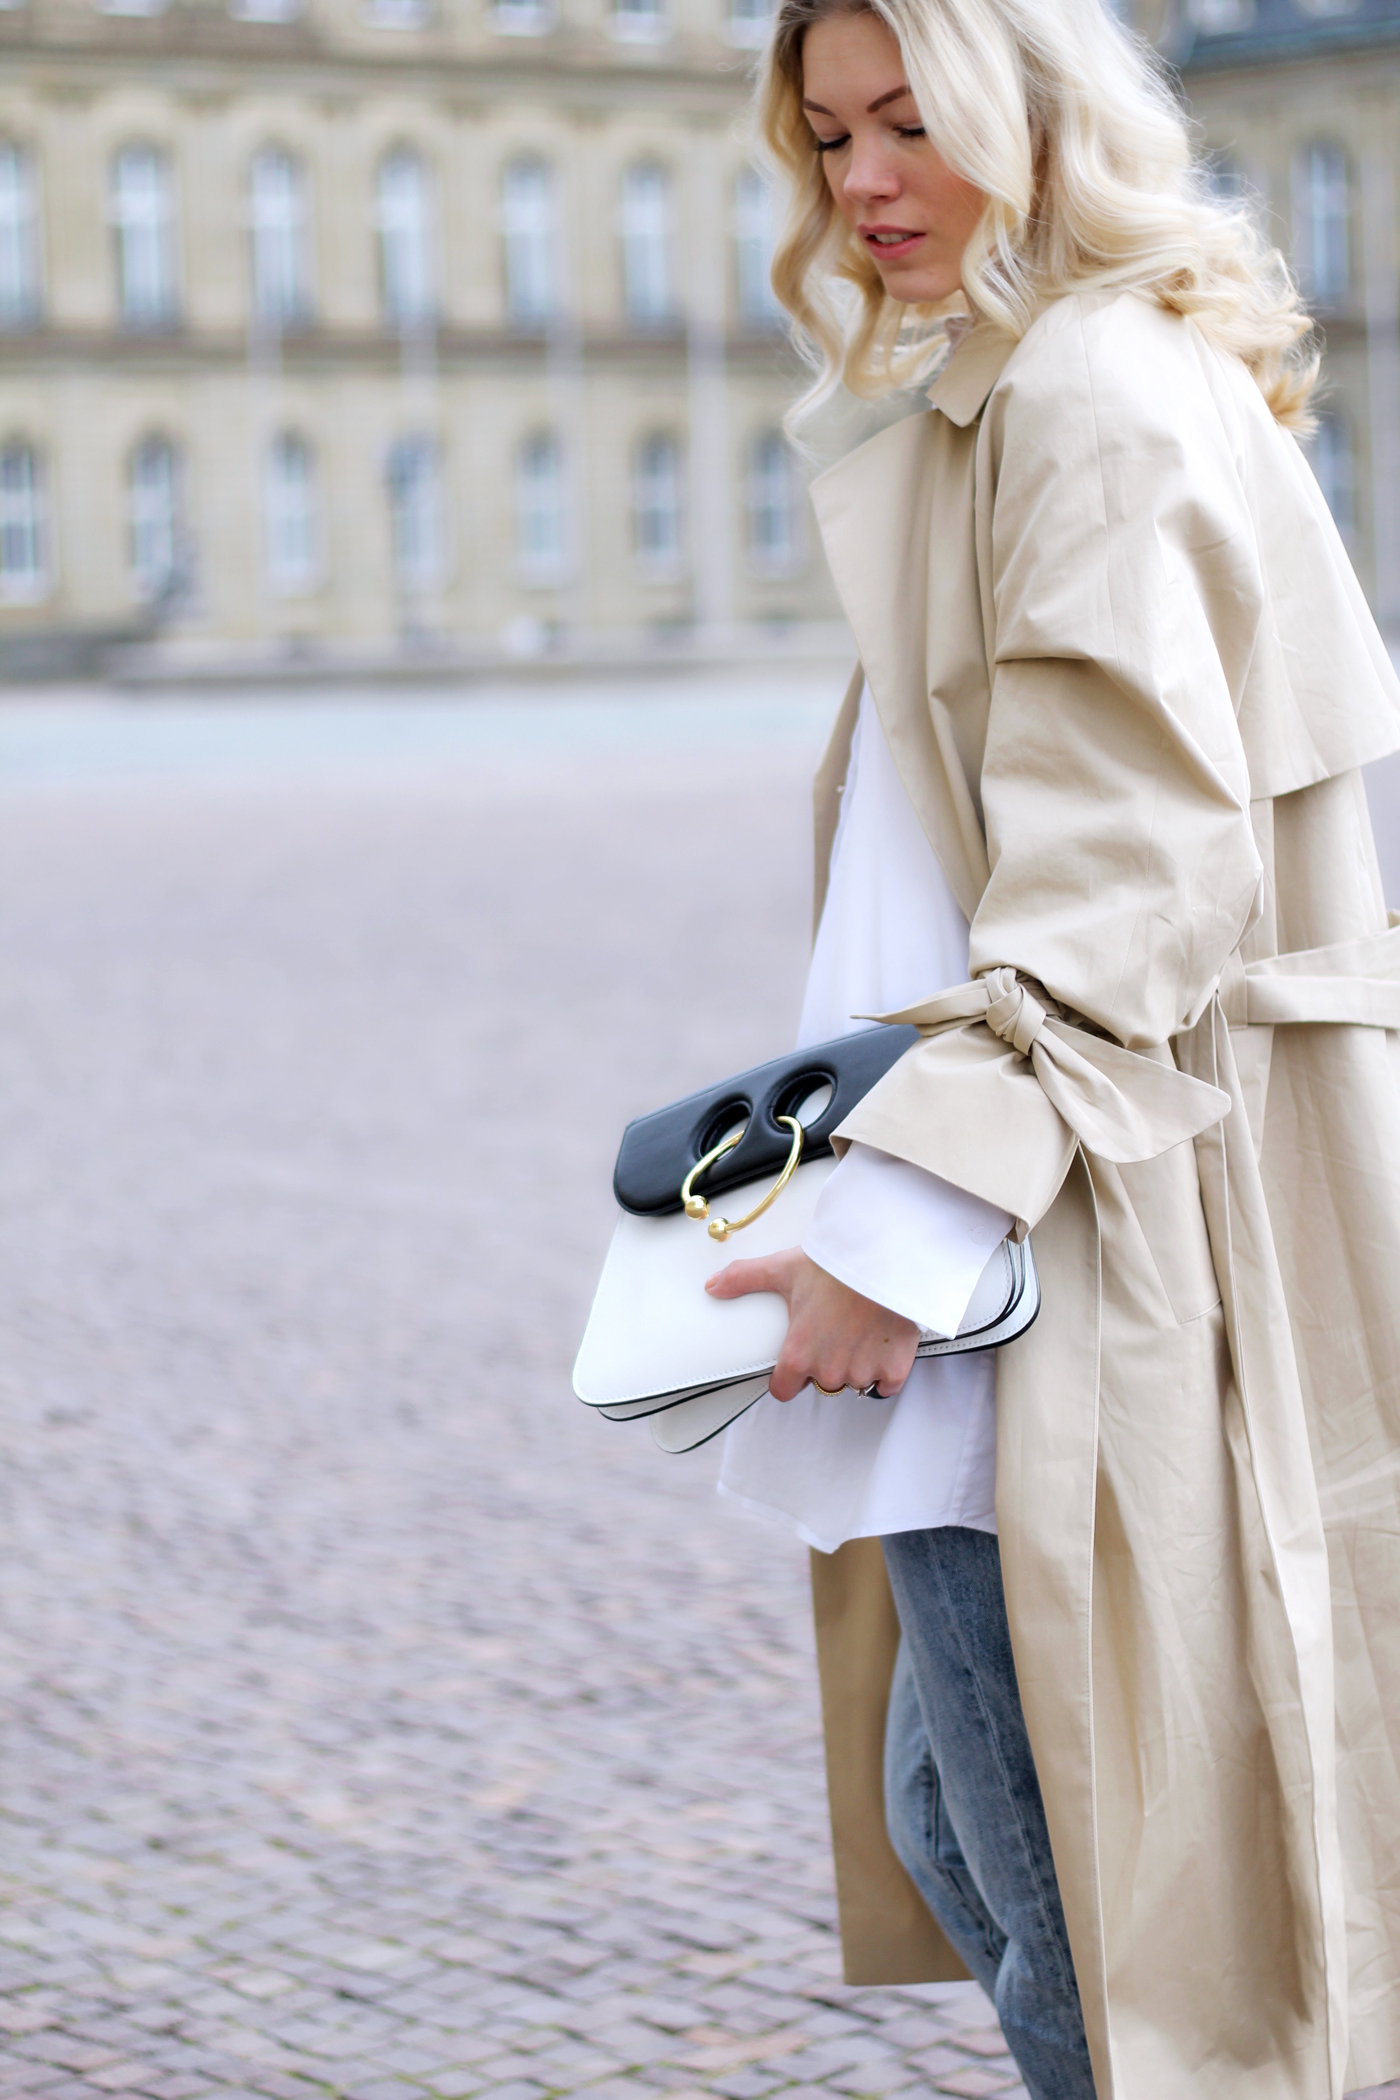 5 tips for cleaning out your closet & classic trench look